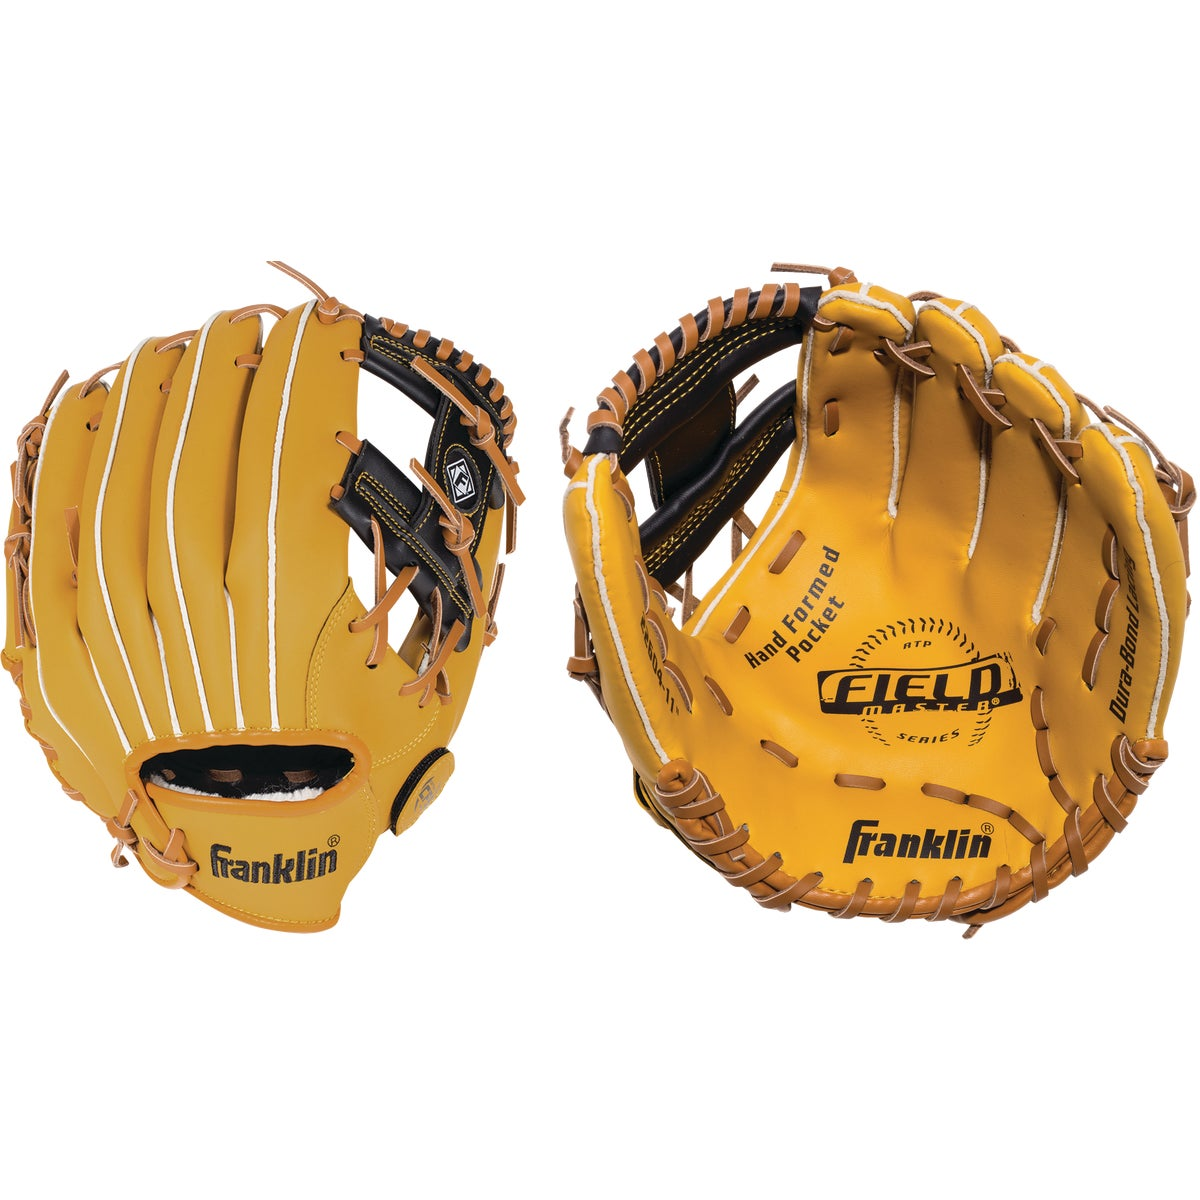 "11"" LTLLG BASEBALL GLOVE - 22310 by Franklin Sports"